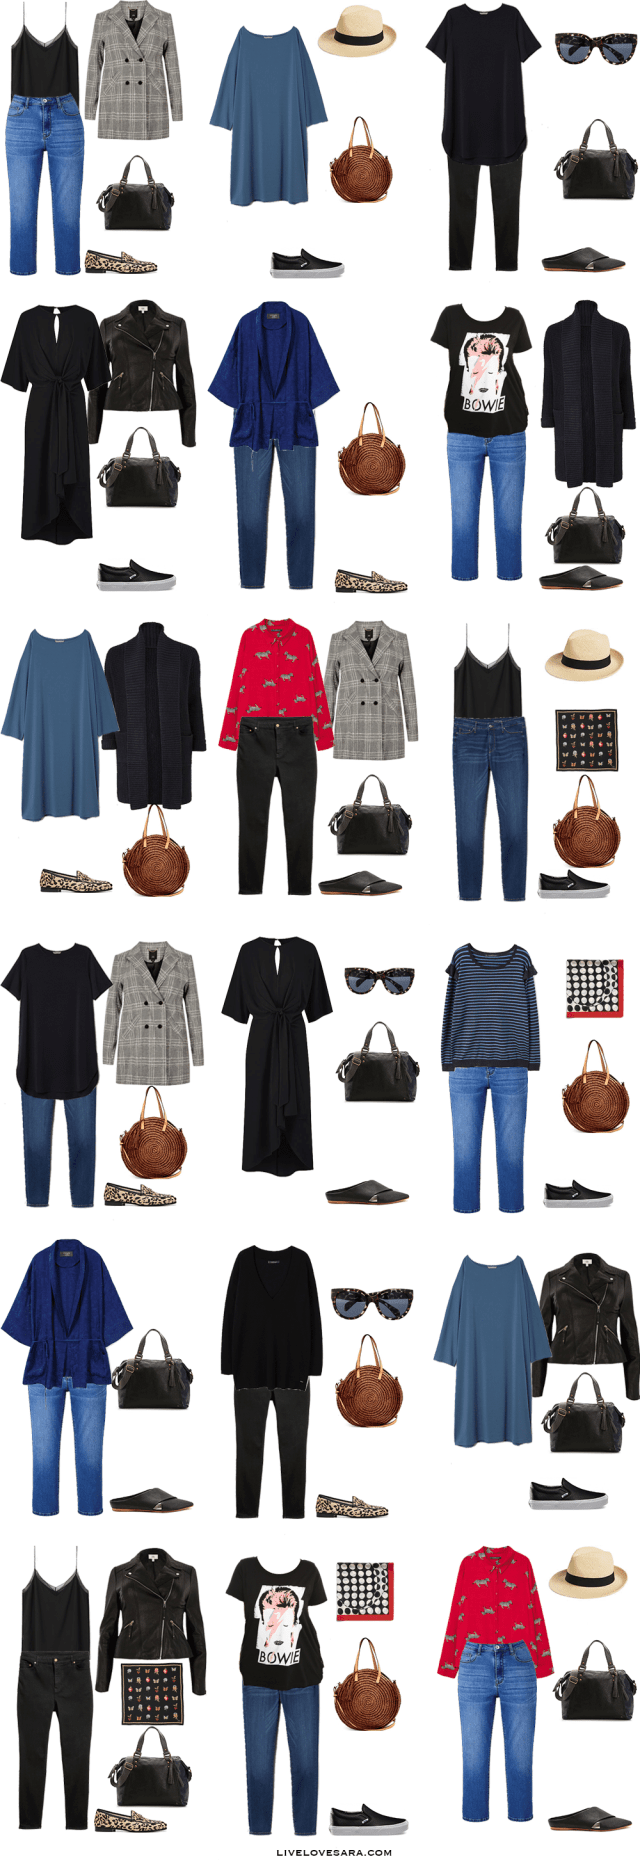 What to Pack for Prague and Berlin Packing Light List | What to pack for the Germany | What to Pack for Czech Republic | Packing Light | Packing List | Travel Light | Travel Wardrobe | Travel Capsule #capsule #plussize #plussizecapsule